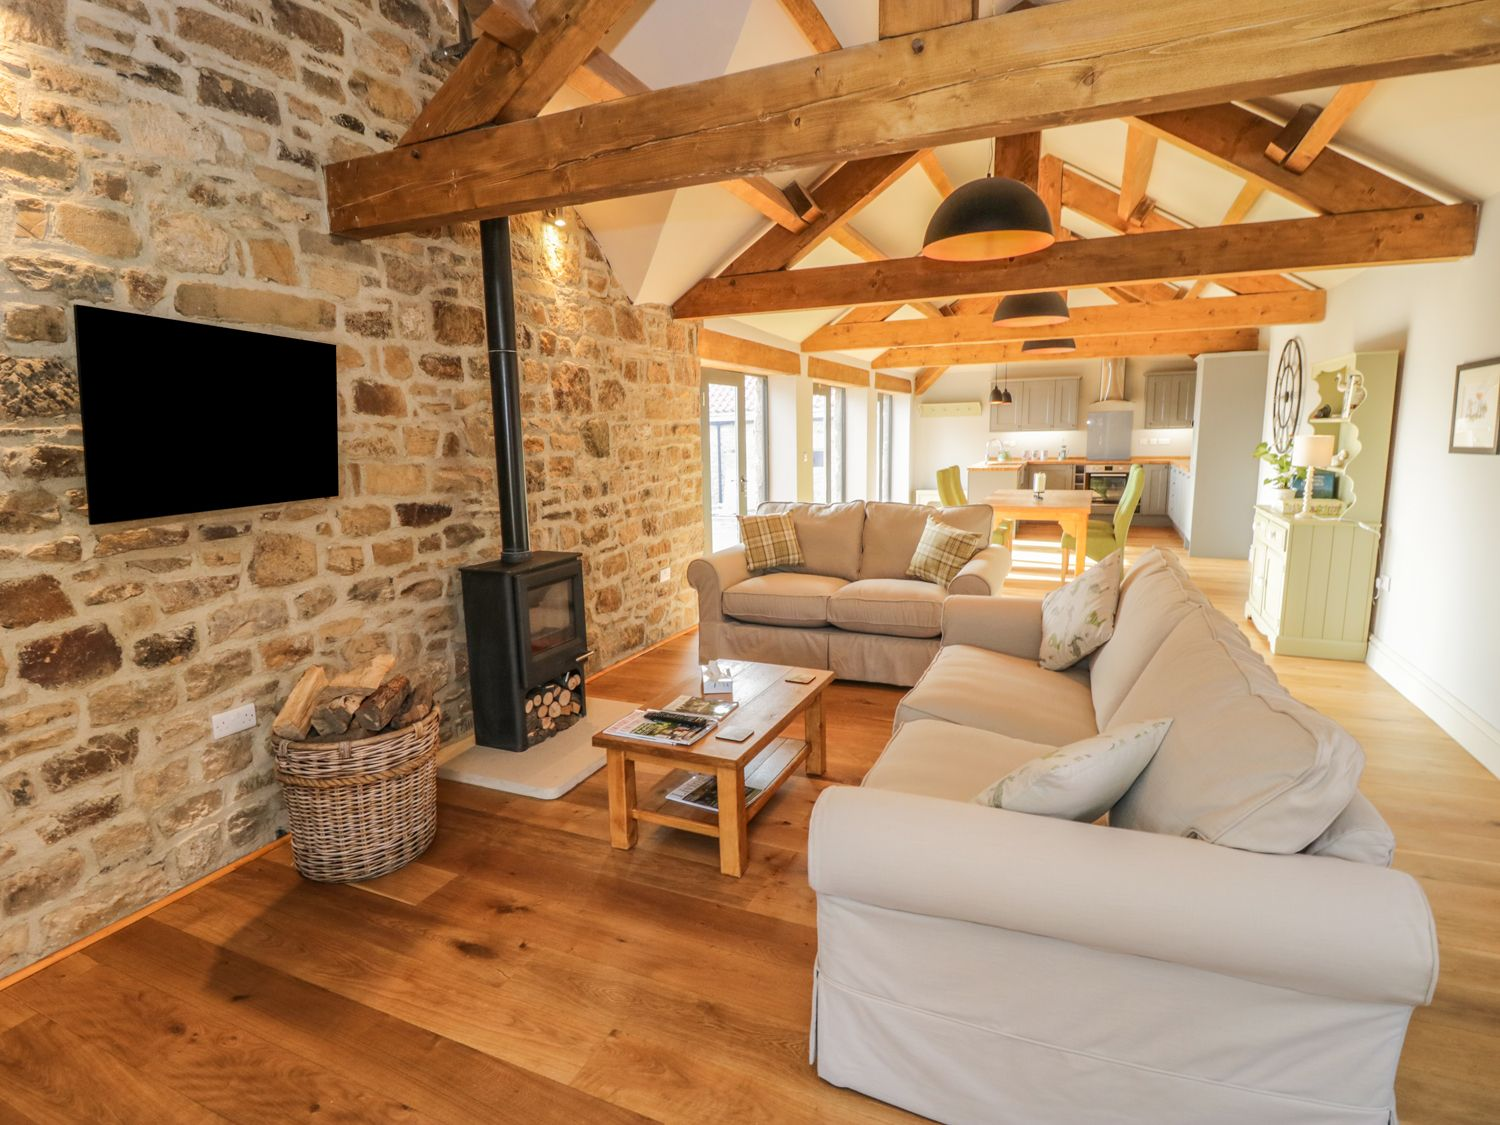 The Byre, Sedbury Park Farm in Gilling West - sleeps 4 people